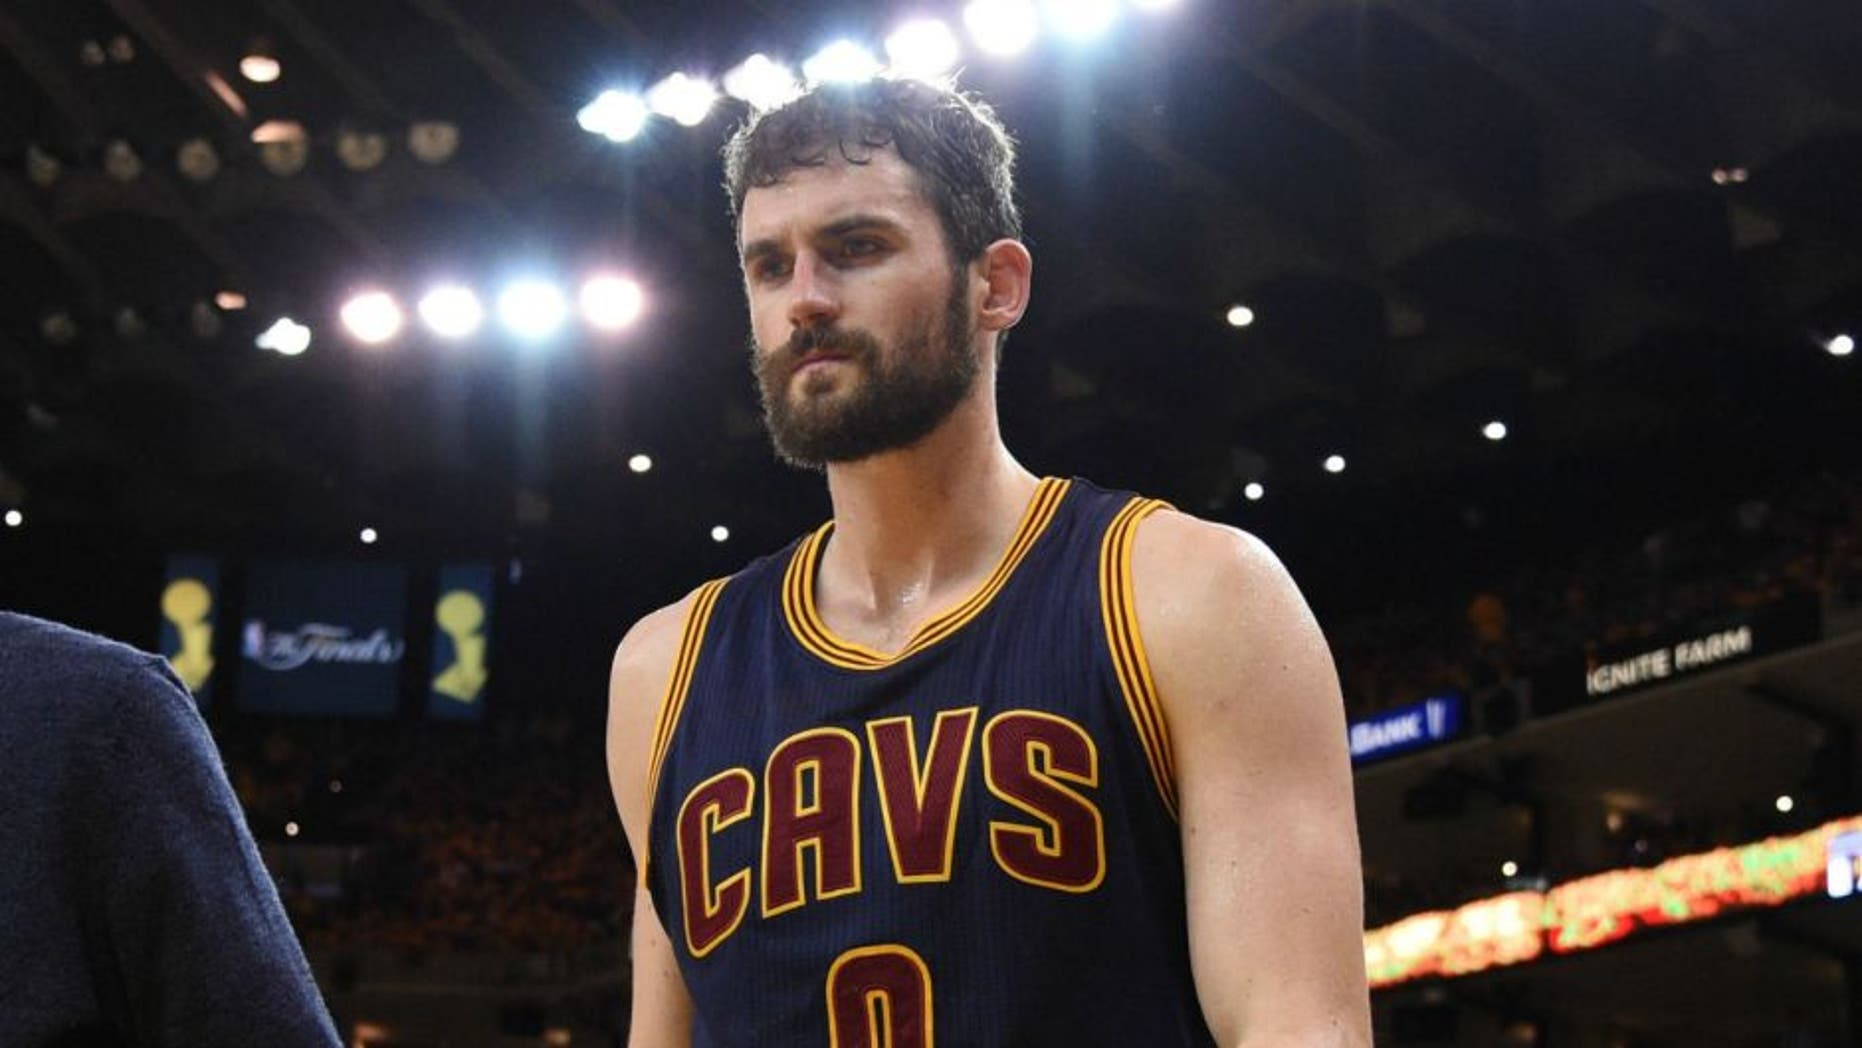 Jun 5, 2016; Oakland, CA, USA; Cleveland Cavaliers forward Kevin Love (0) leaves the bench during the third quarter against the Golden State Warriors in game two of the NBA Finals at Oracle Arena. Mandatory Credit: Kyle Terada-USA TODAY Sports